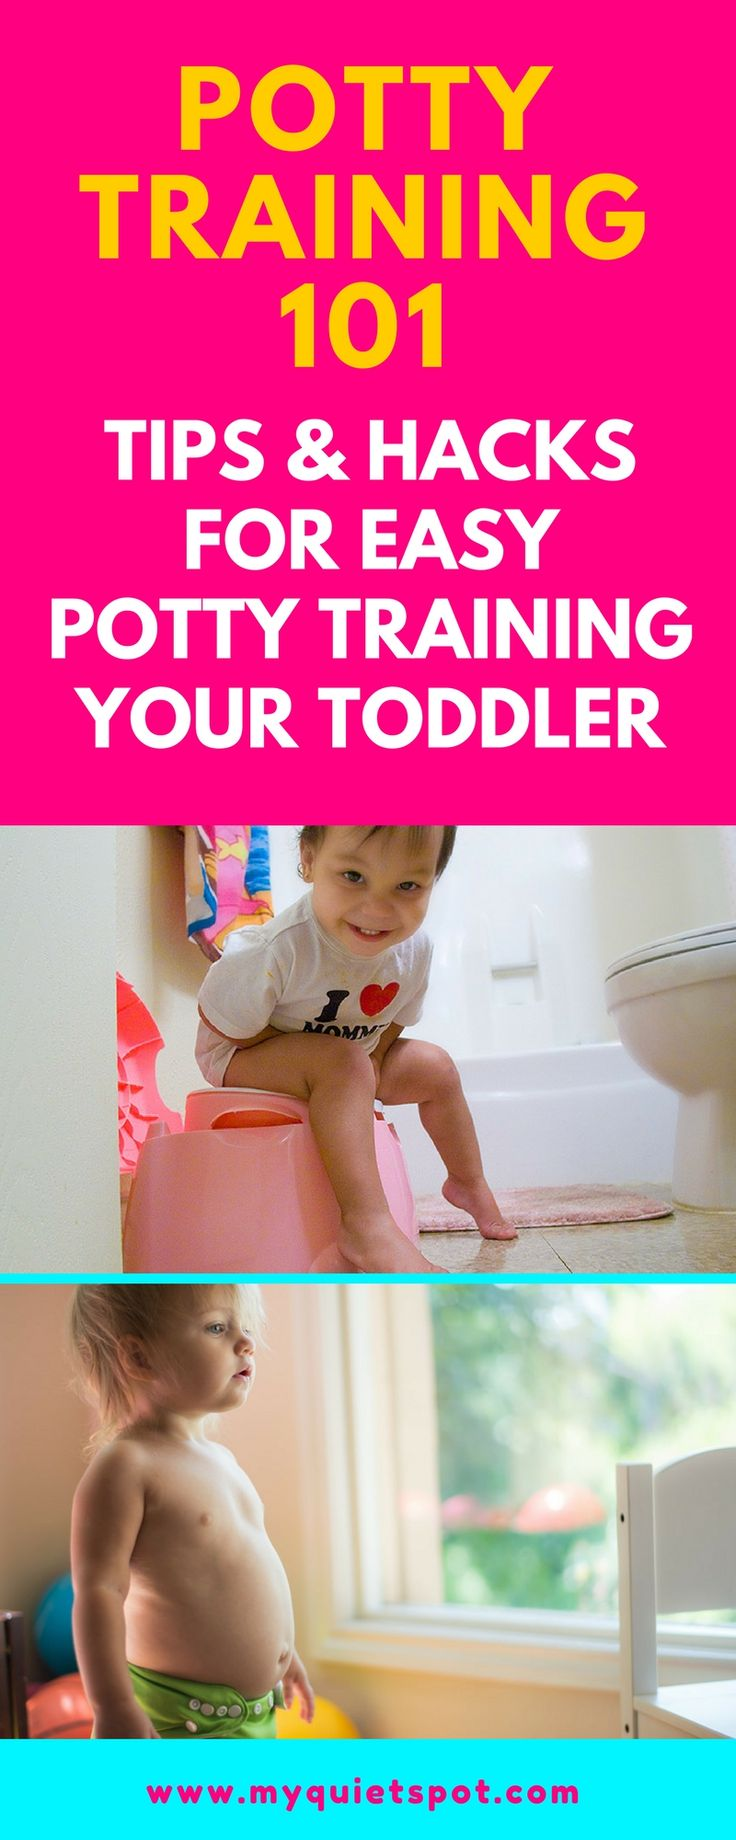 Potty training tips for toddlers.Easy tips and hacks that can help you potty train you kid without effort. | potty training |